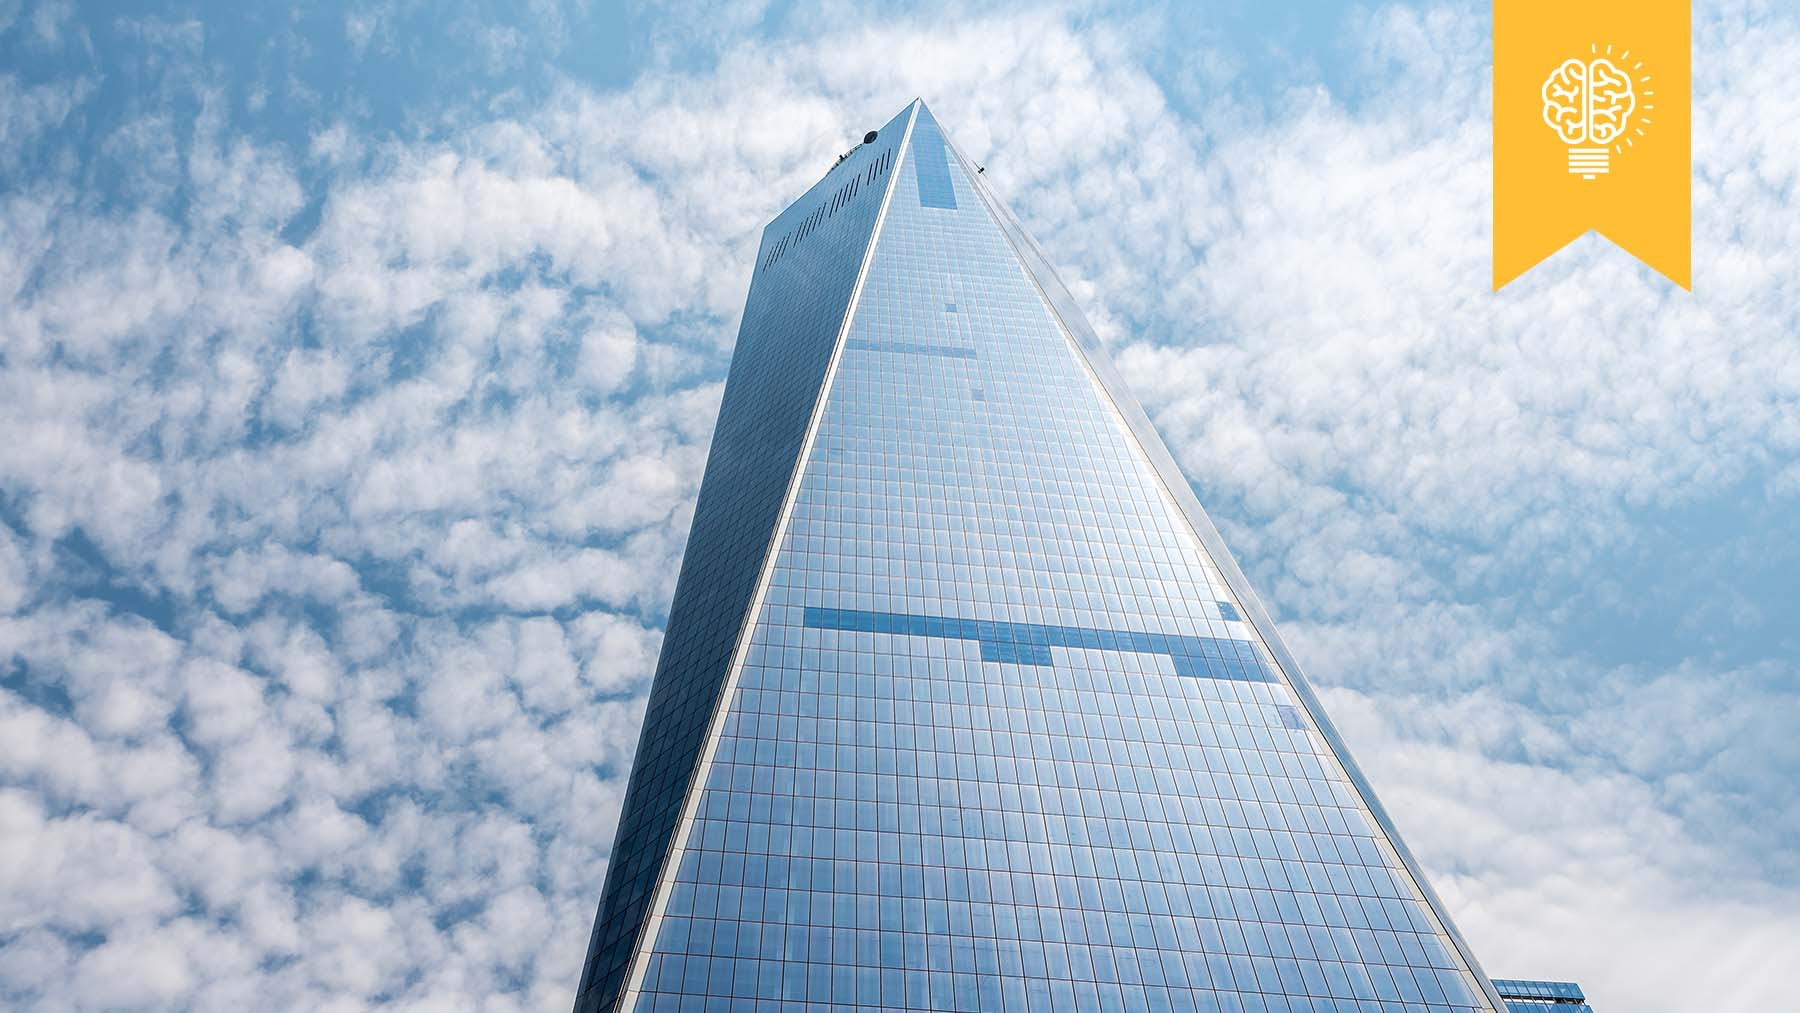 Condé Nast's headquarters at the World Trade Center in New York | Source: Shutterstock